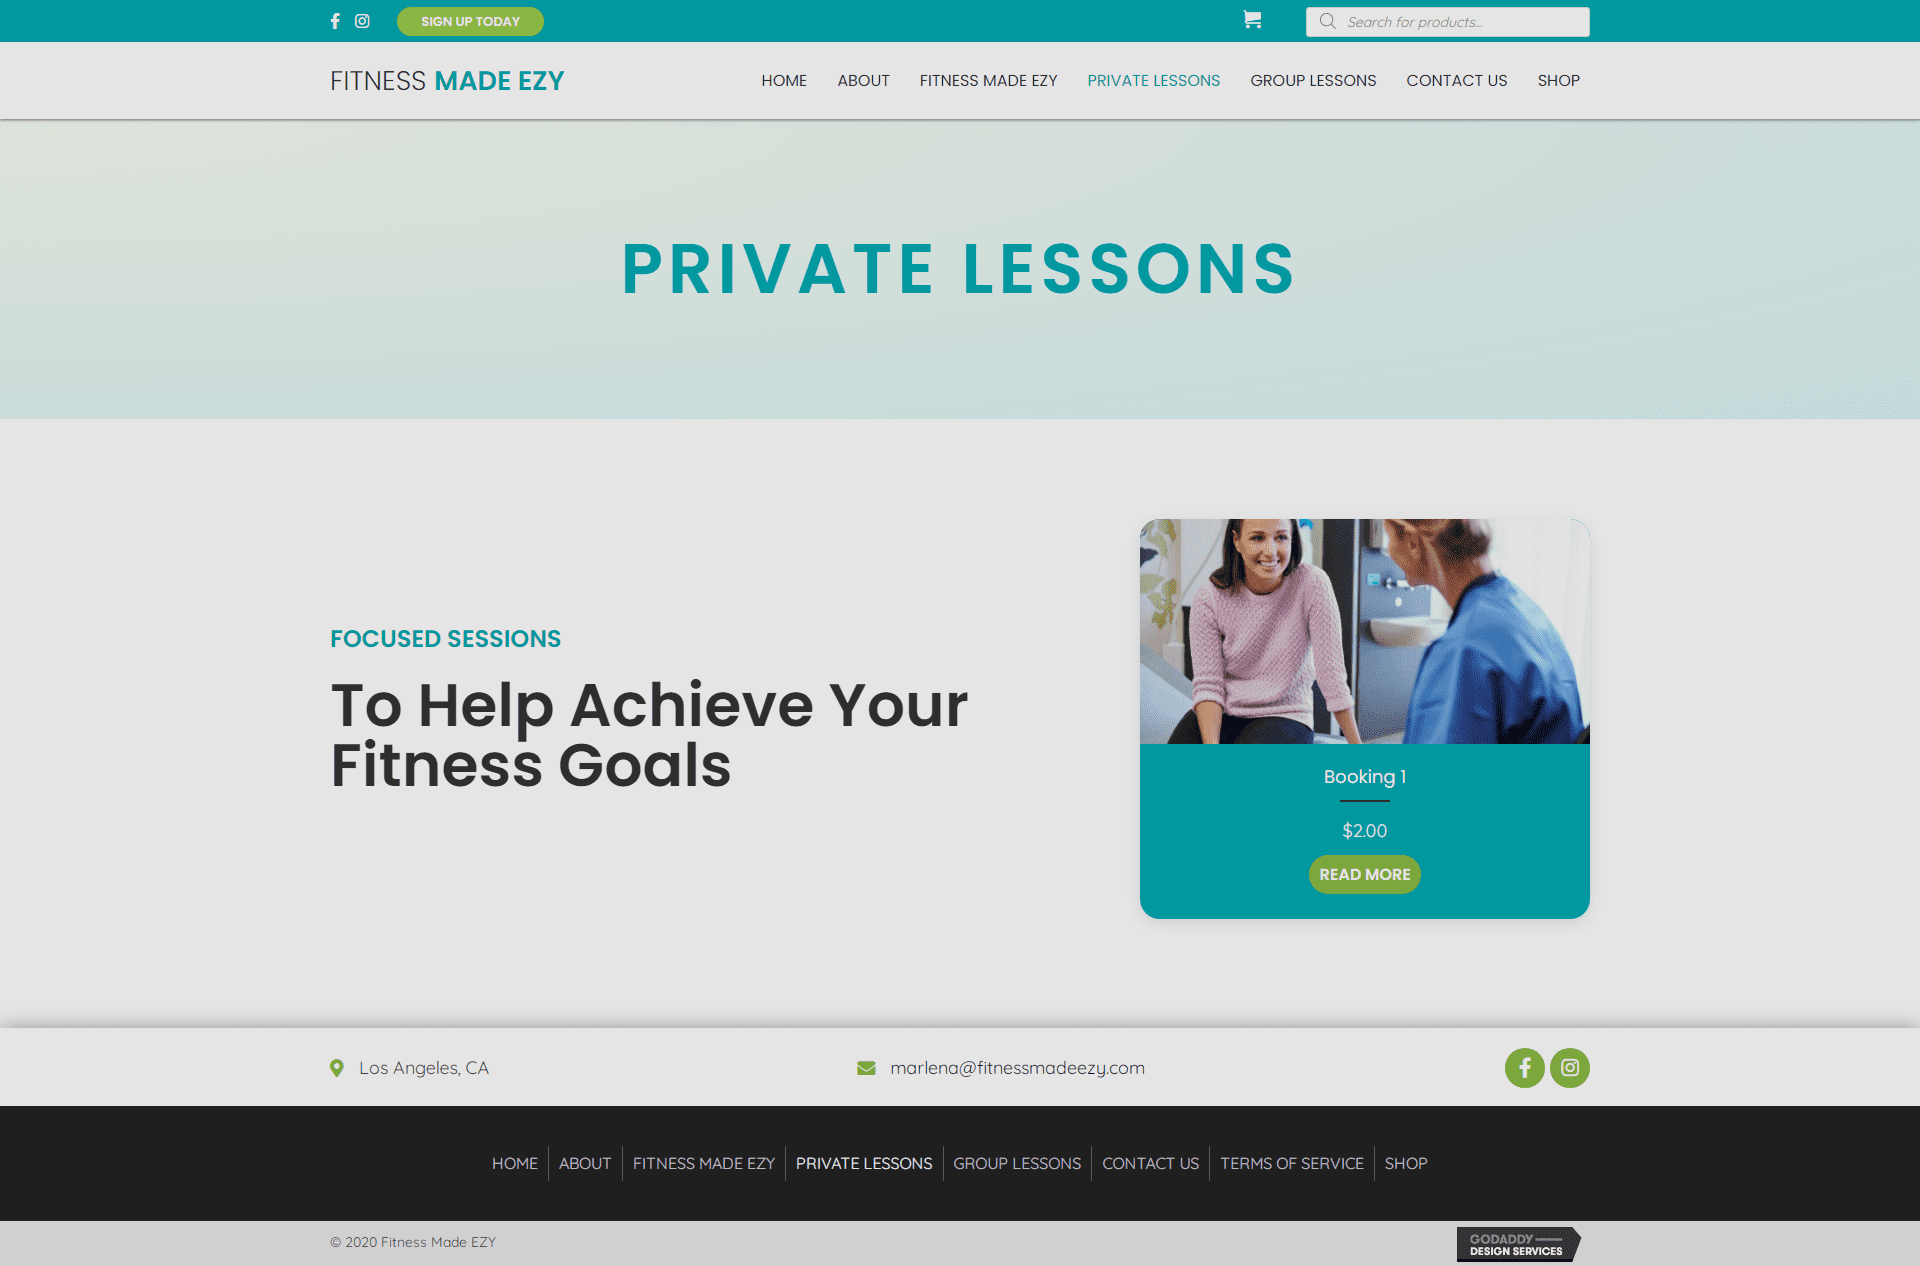 Fitness Made EZY Private Lessons Page